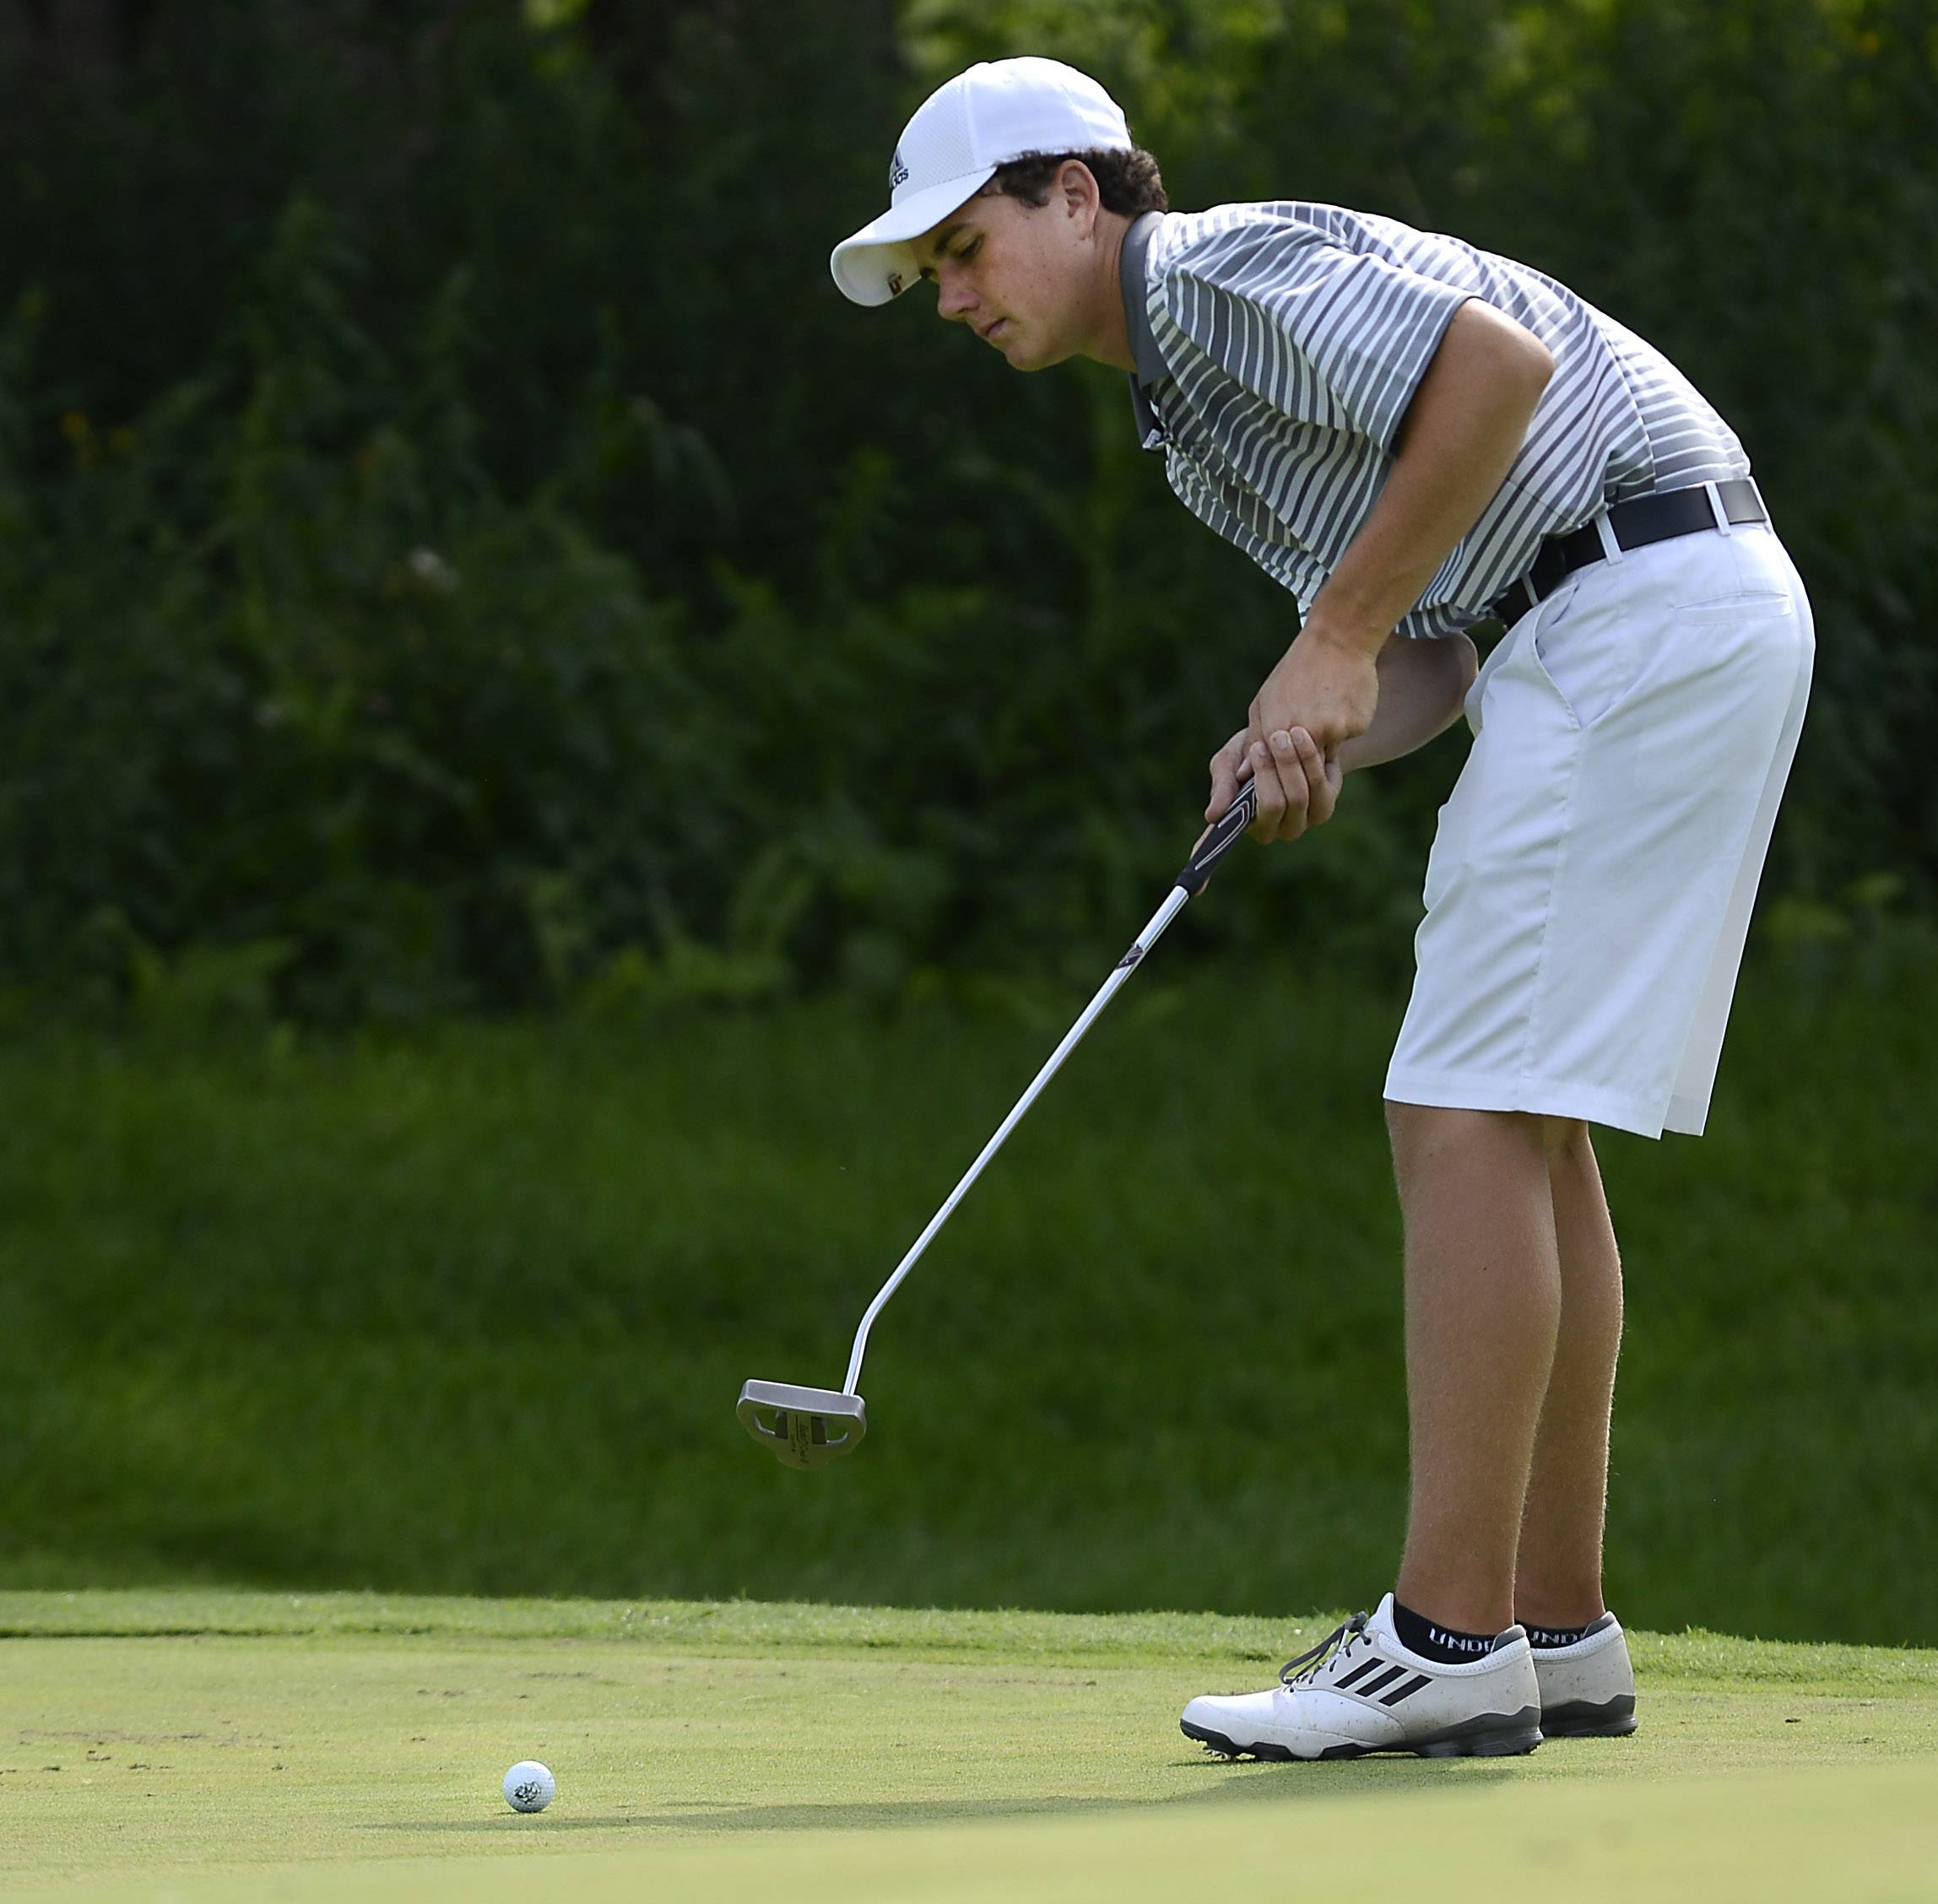 Kaneland's Jeremy Faletto putts on #9 Thursday at the Geneva boys golf invitational at Mill Creek Golf Club.